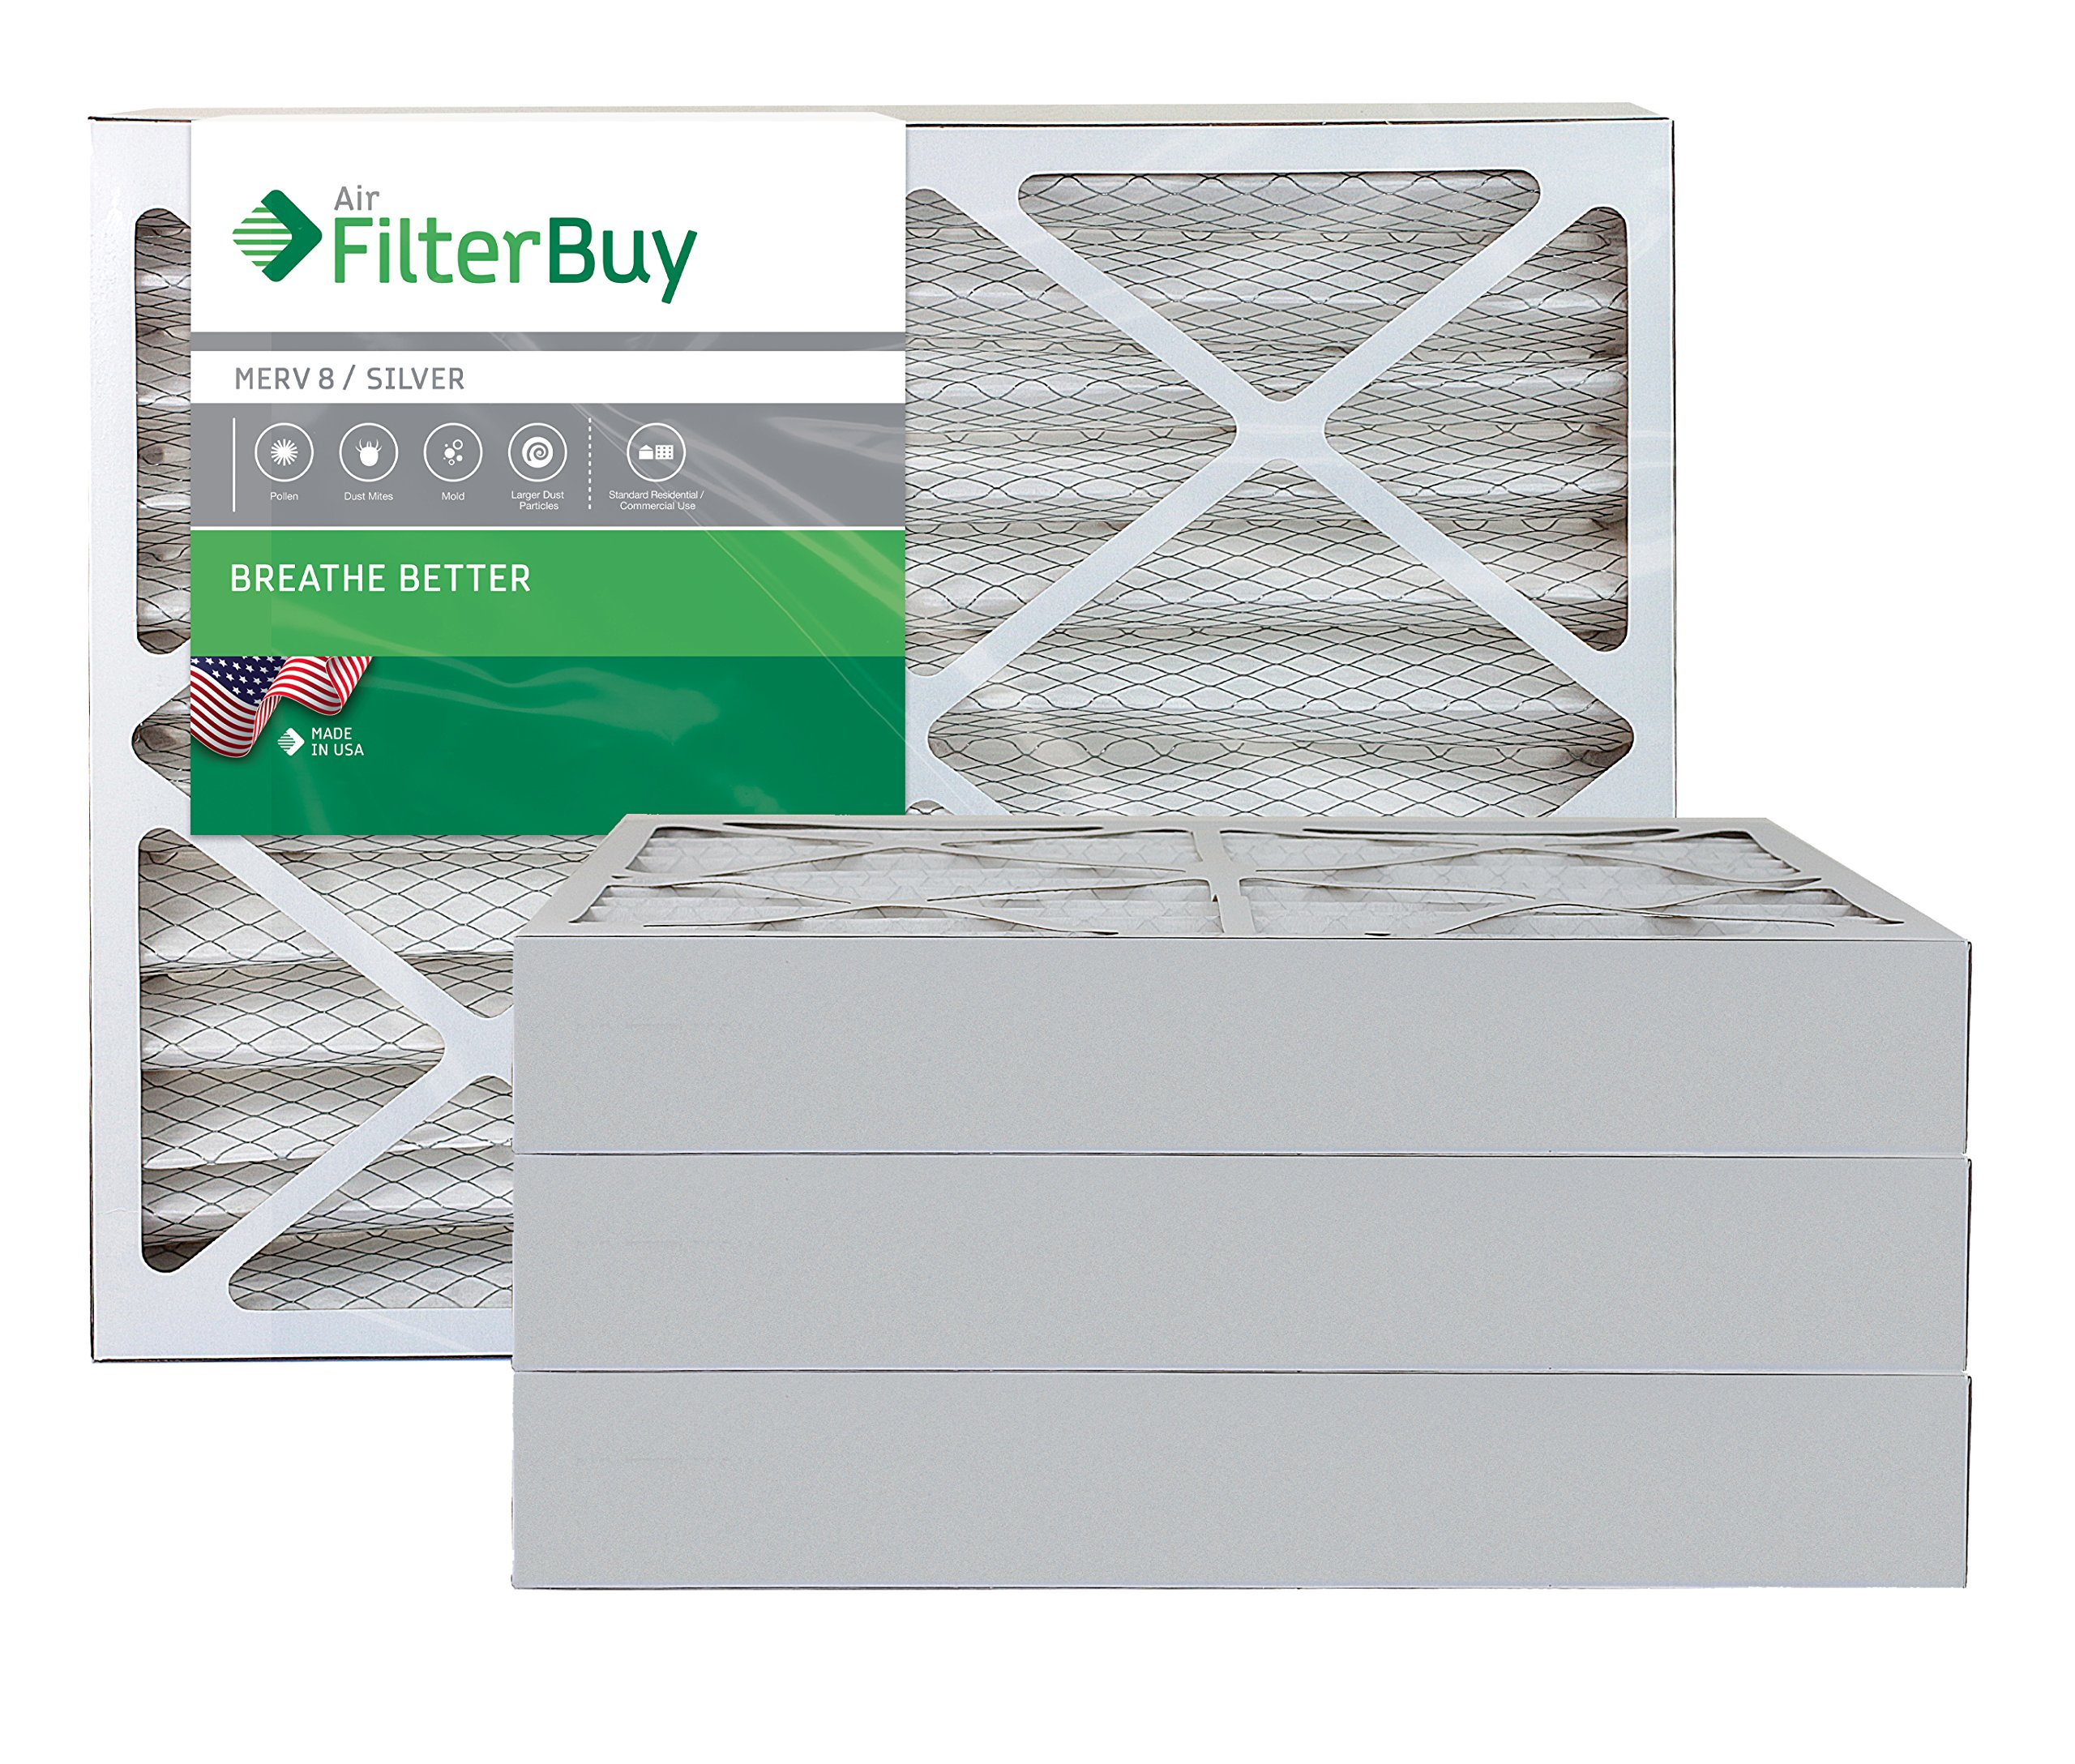 Nordic Pure 19/_1//4x23/_1//4x2 Exact MERV 10 Pleated AC Furnace Air Filters 4 Pack